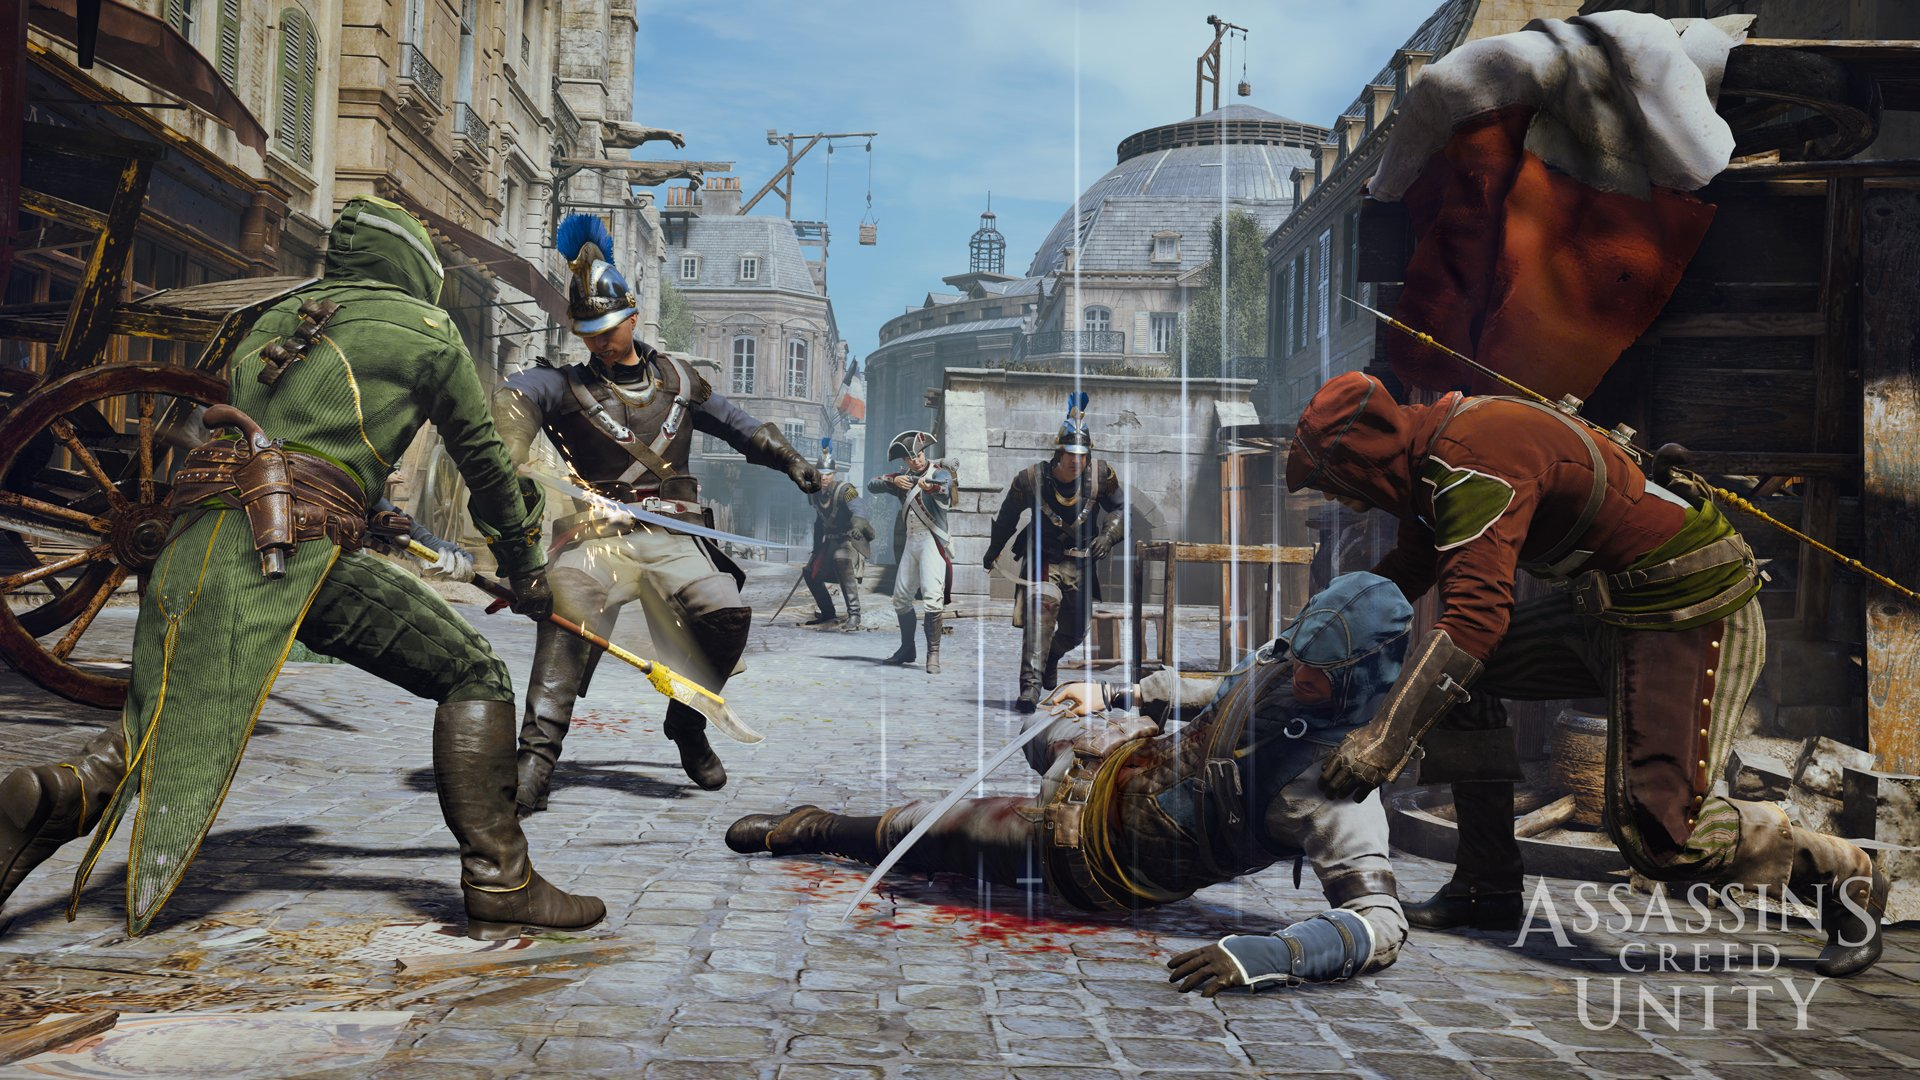 file_65277_Assassins_Creed_Unity_COOP_GroupHealing